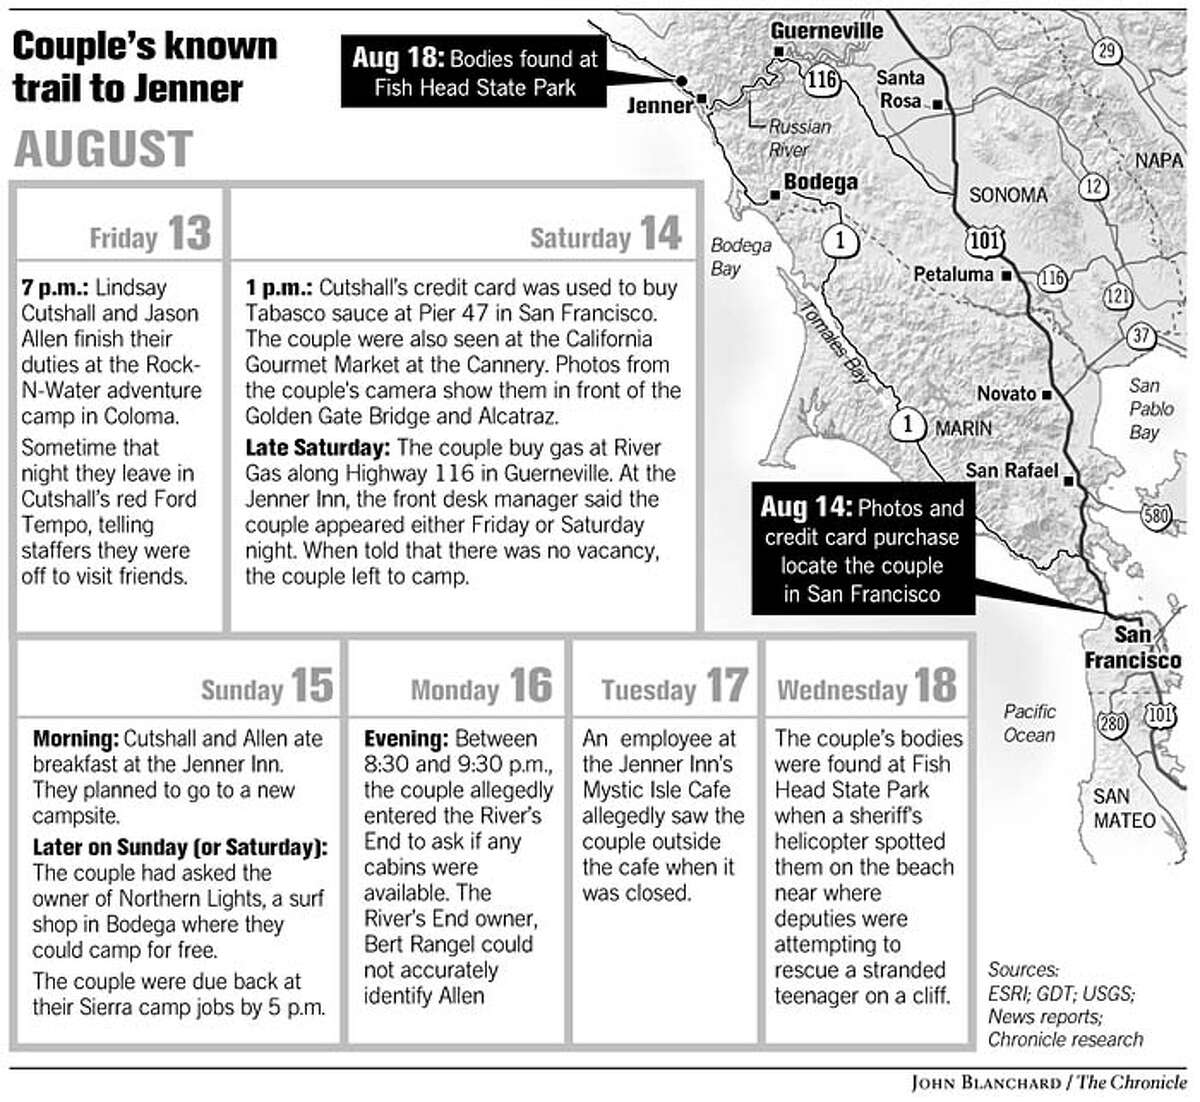 The Couple's Known Trail to Jenner. Chronicle graphic by John Blanchard